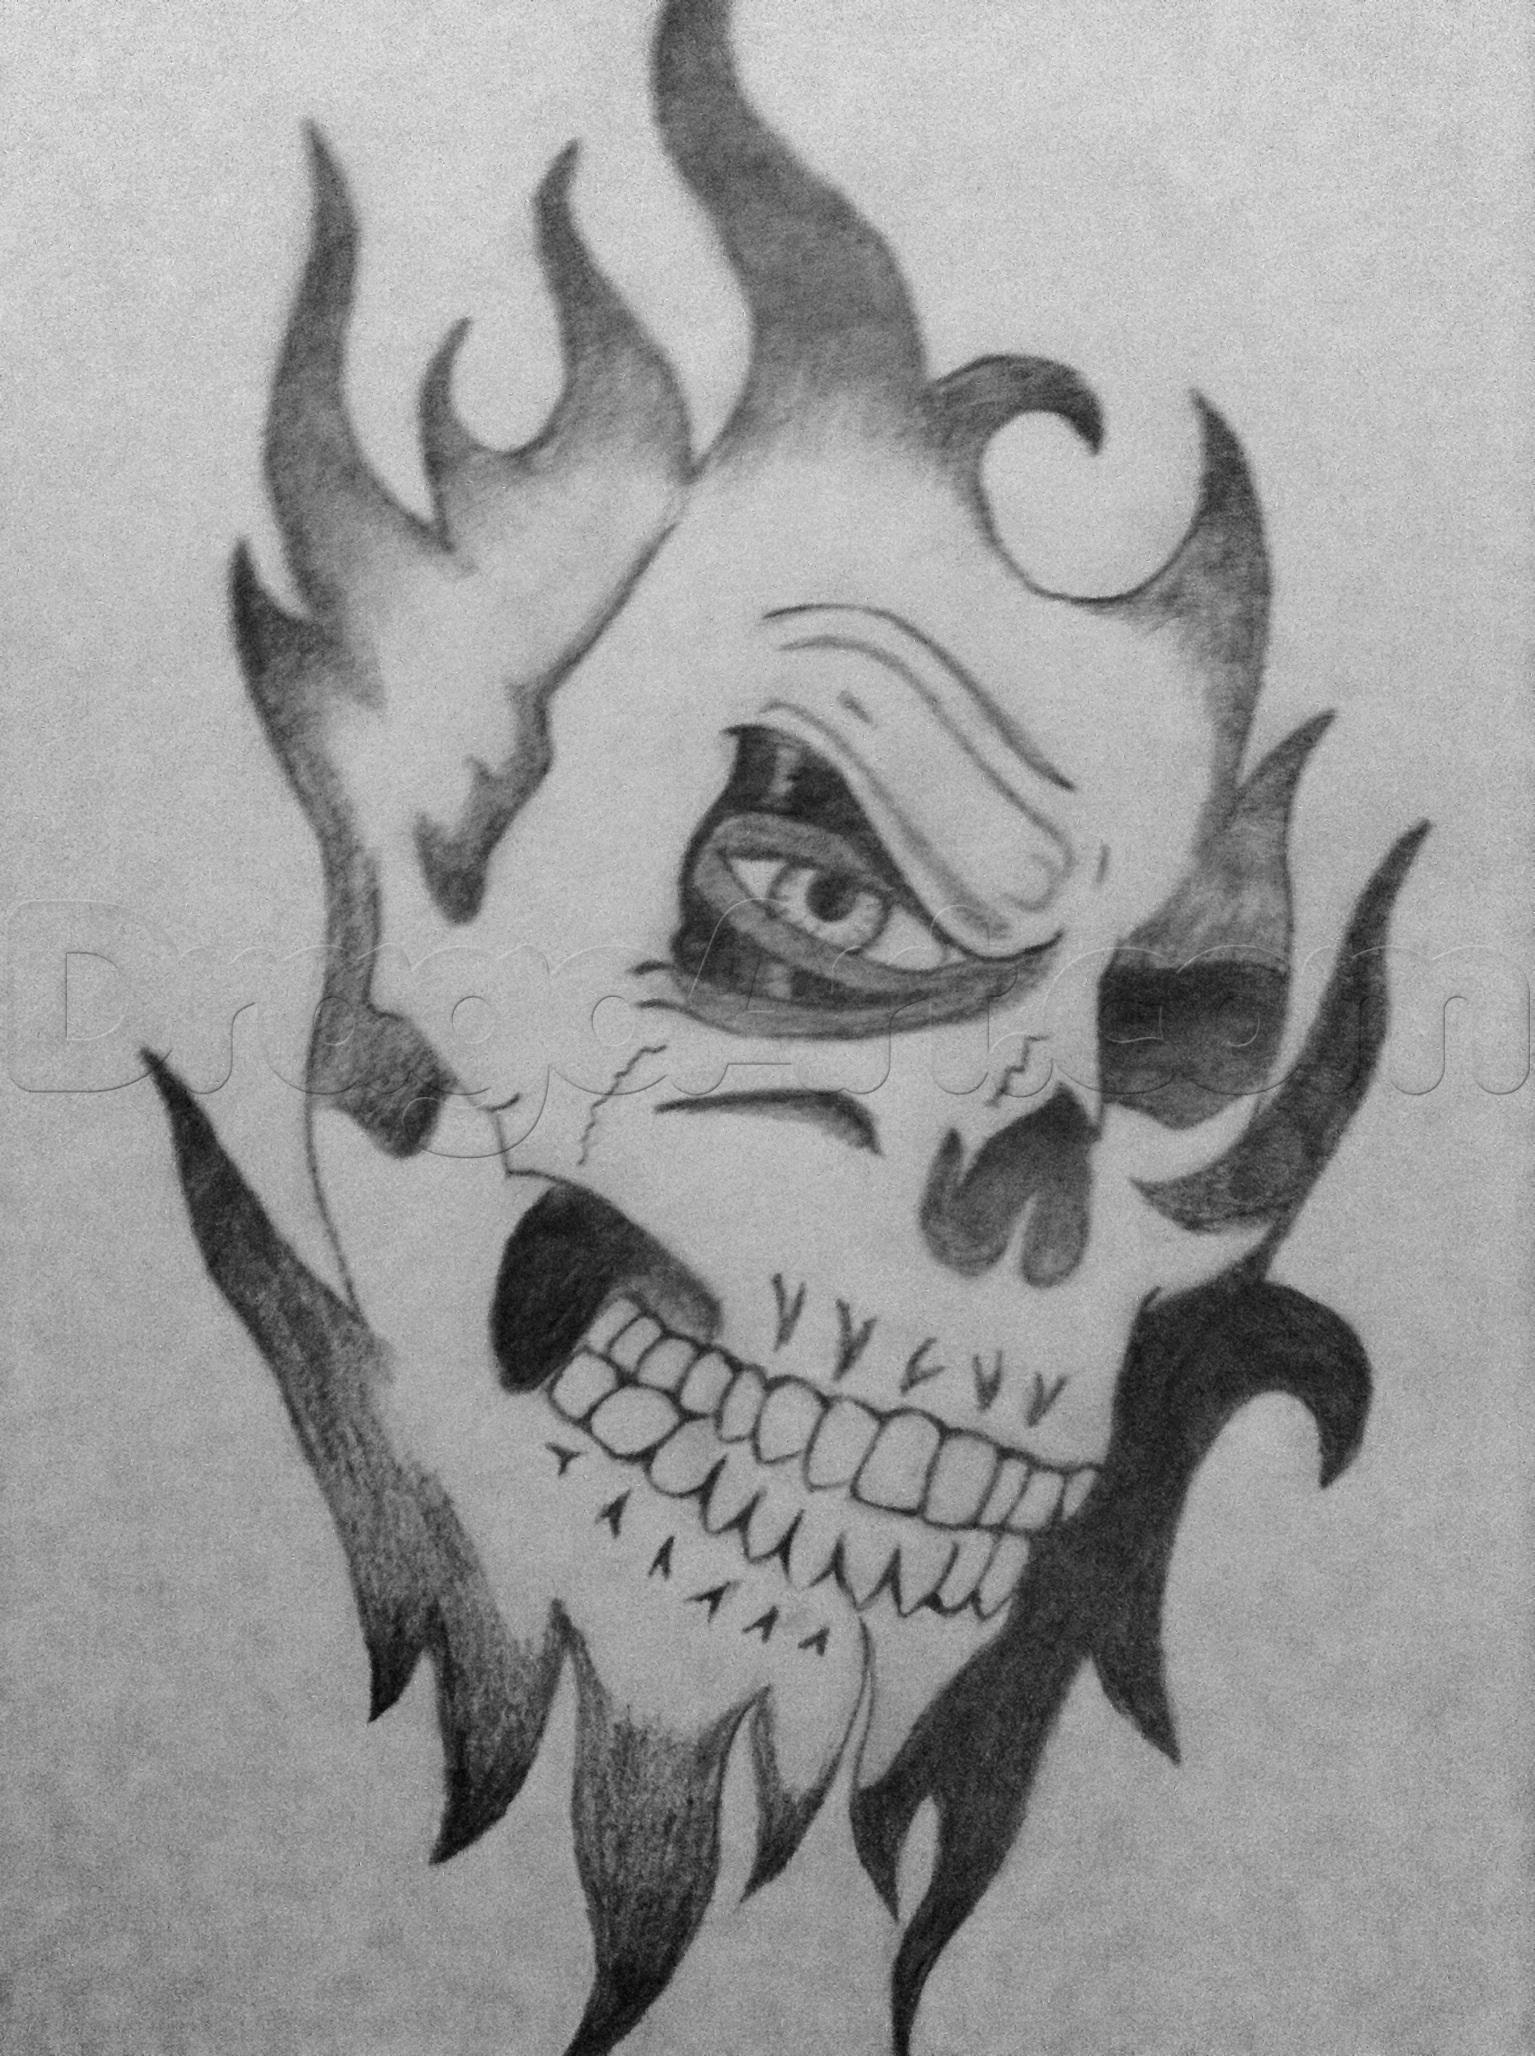 Cool Drawings to Draw New How to Draw An Awesome Skull Step by Step Skulls Pop